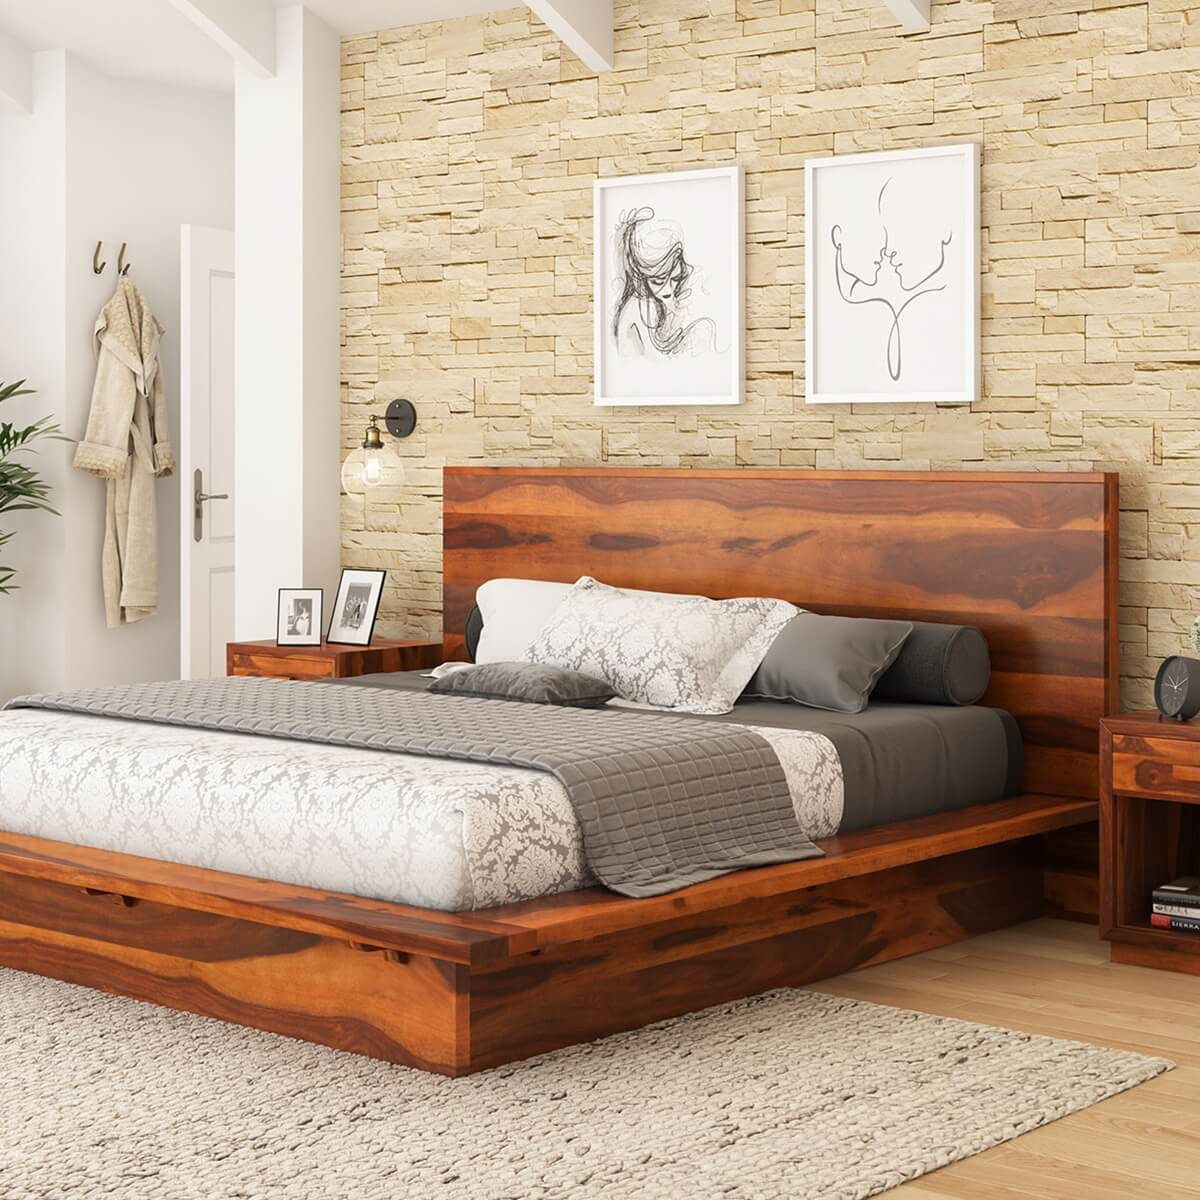 Pictures of platform beds - Delaware Solid Wood Platform Bed Frame